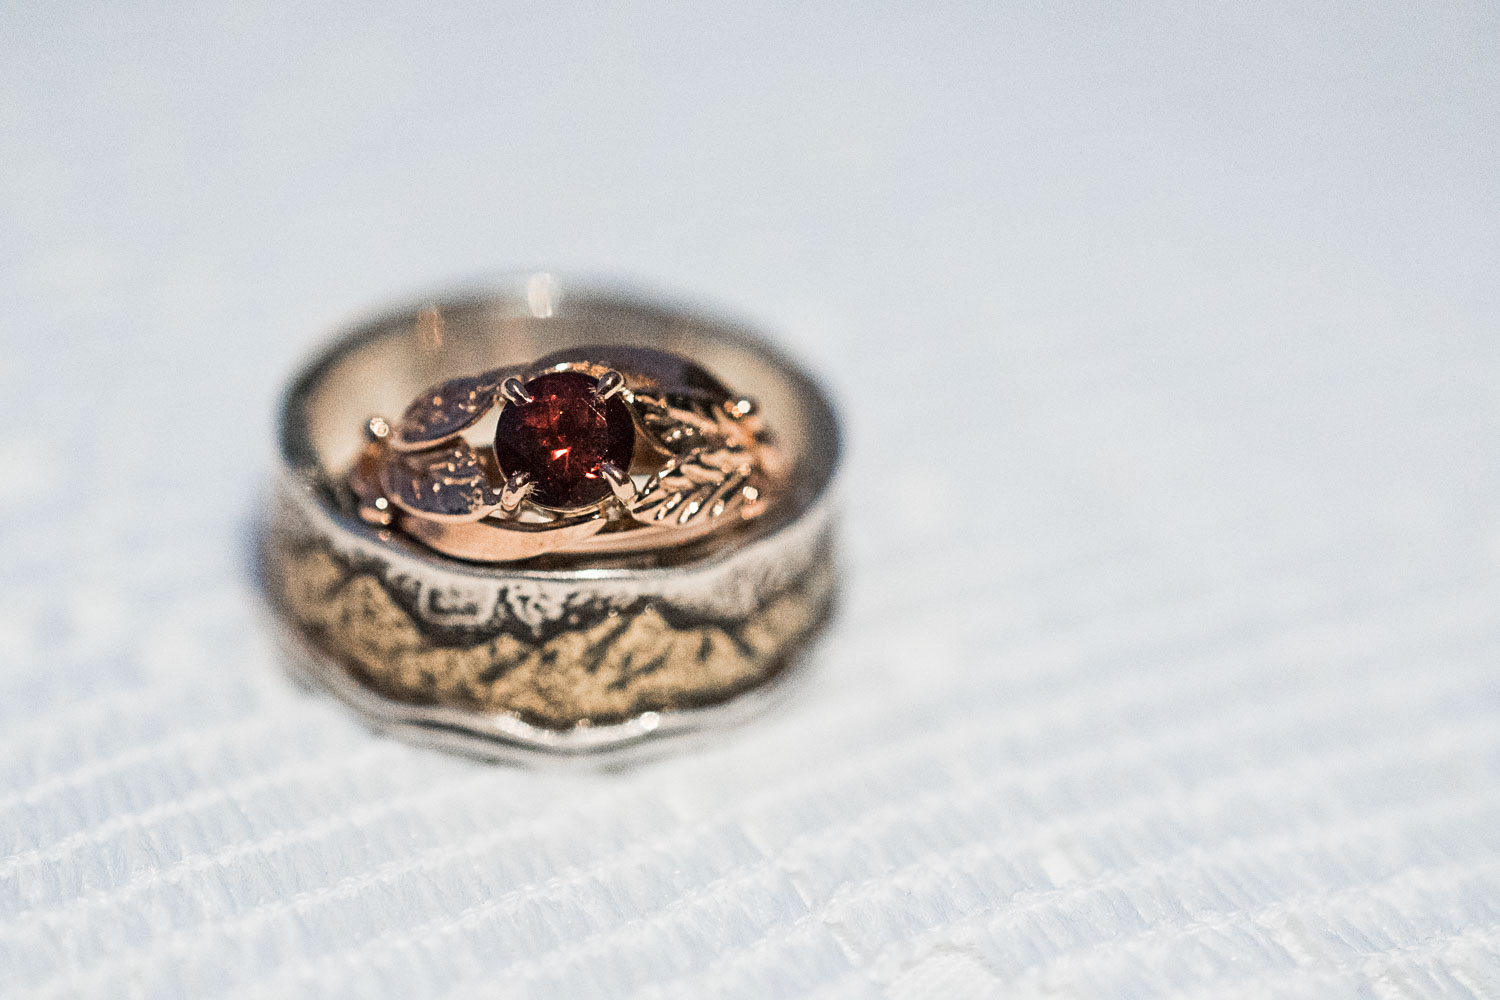 192 gold and ruby wedding ring.jpg